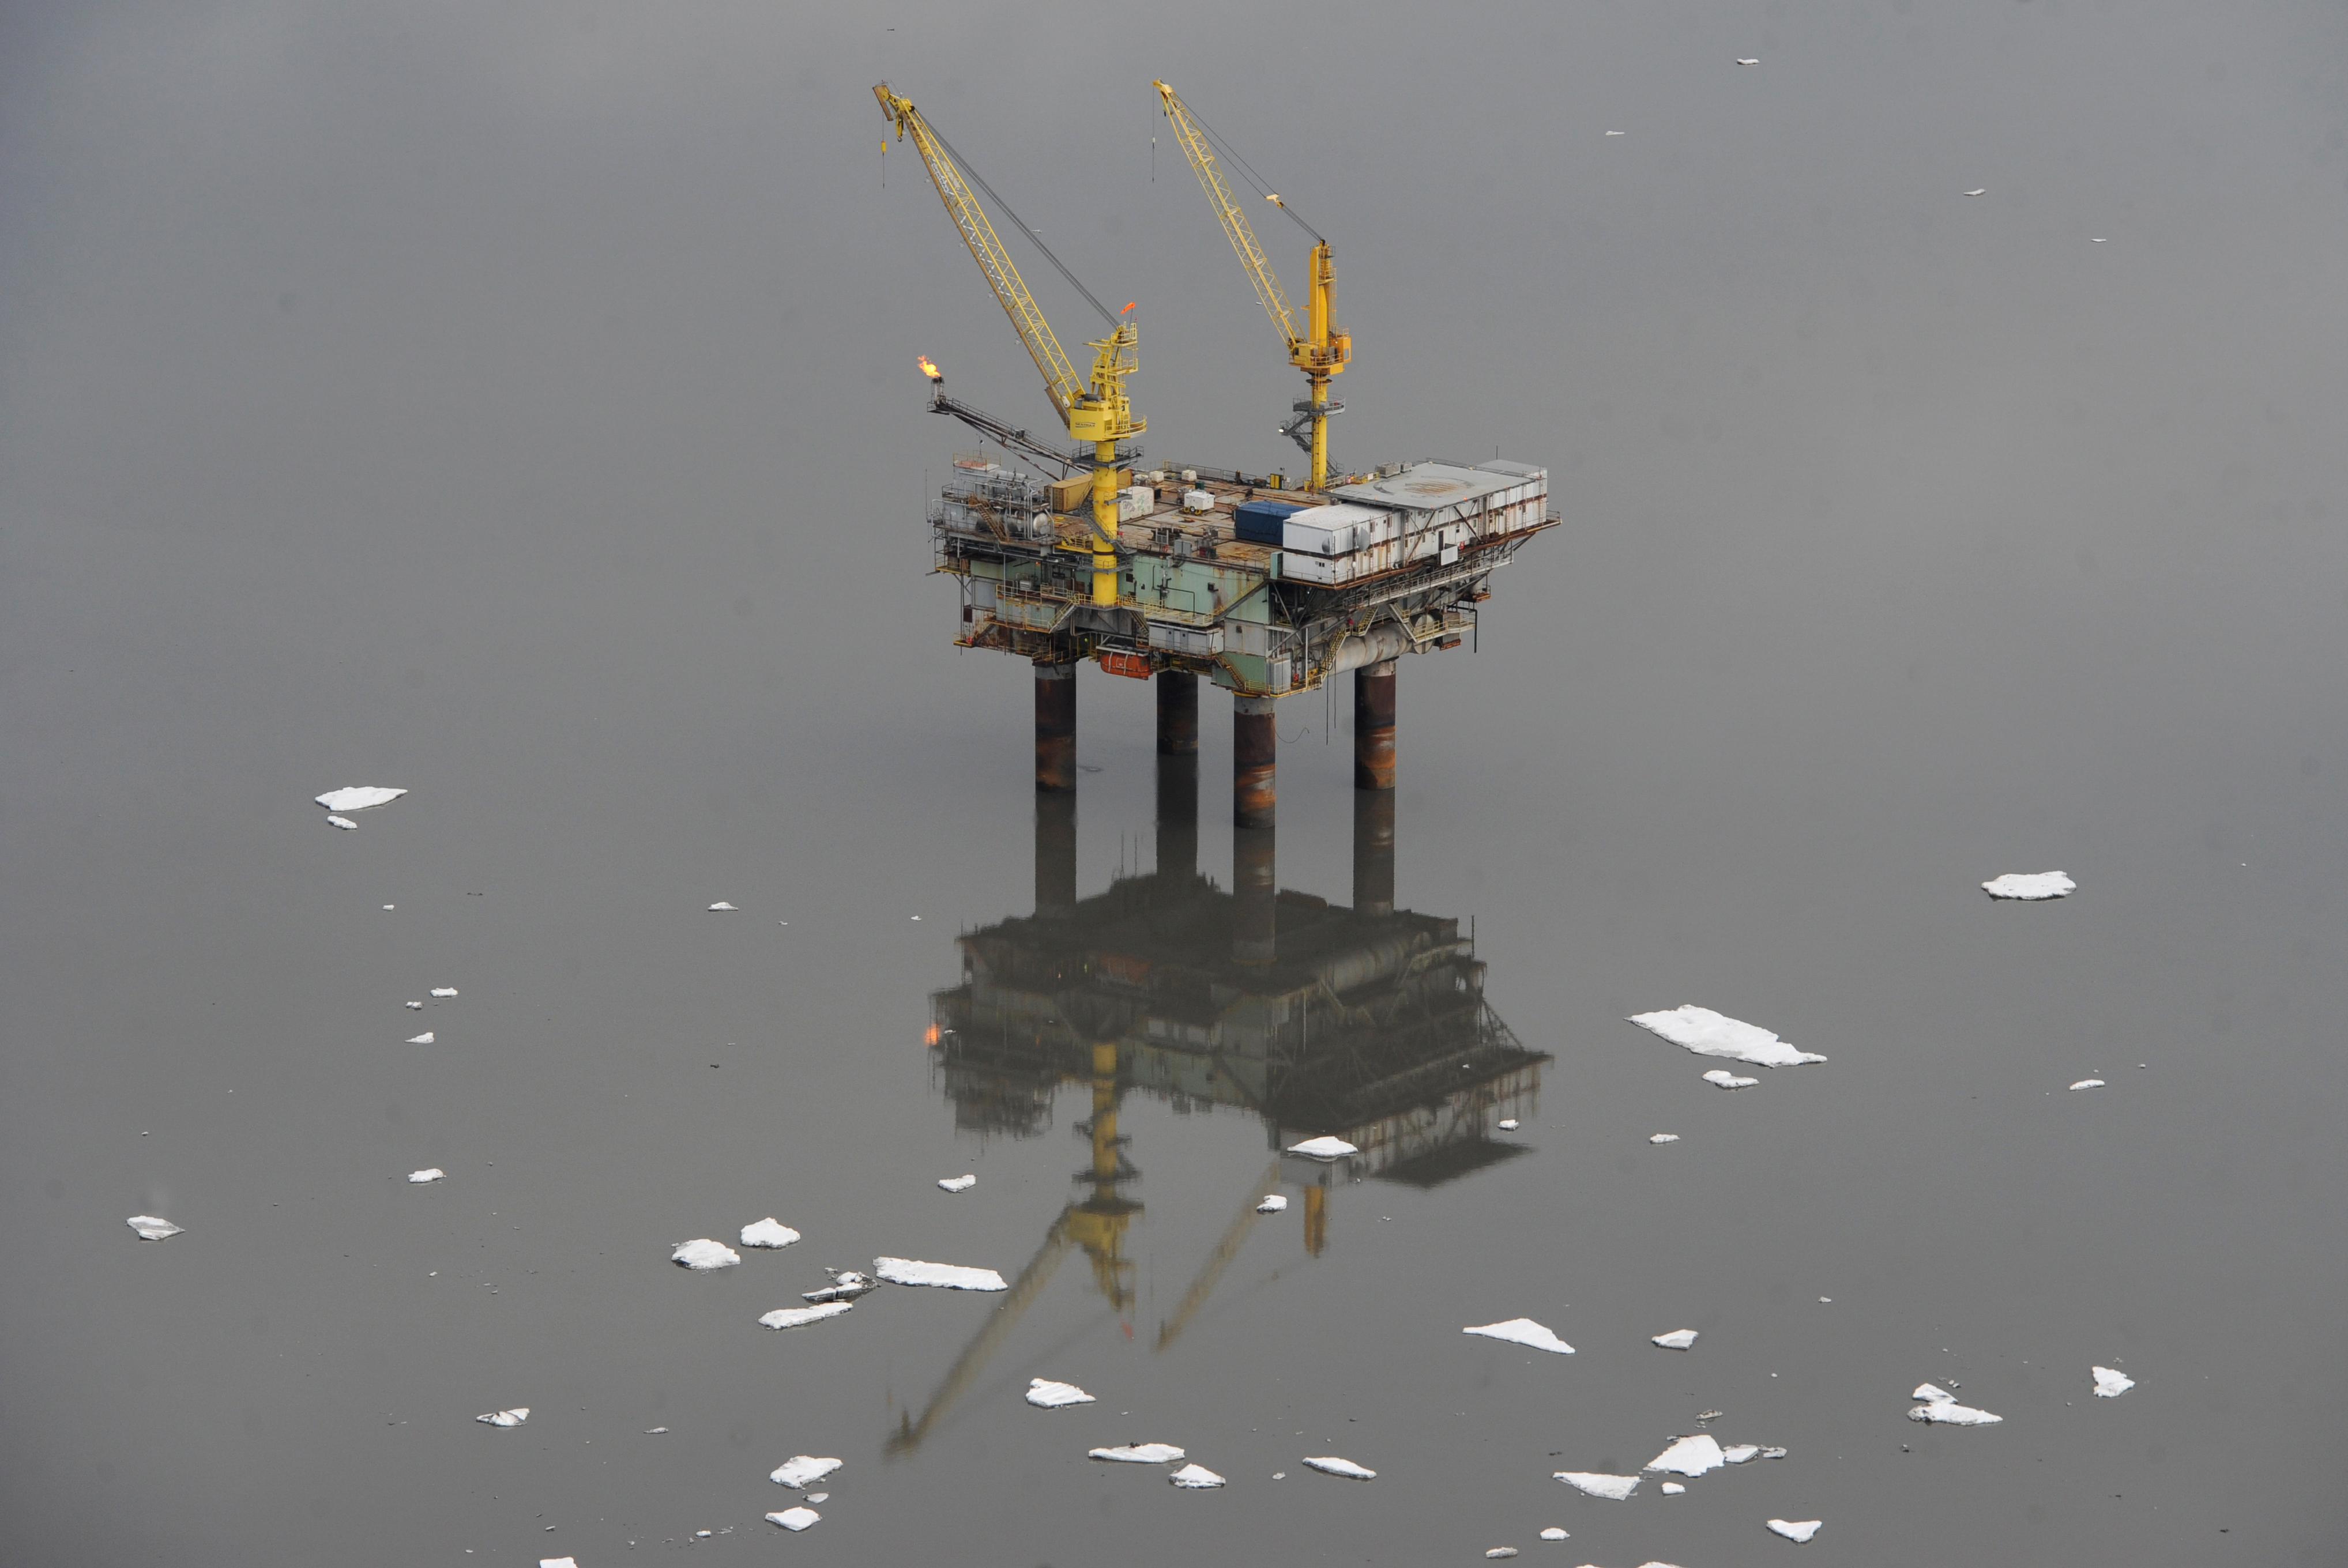 A sheen of oil was discovered at about 11:20 a.m. Saturday by workers on Hilcorp's Anna Platform located about 45 miles southwest of Anchorage near the village of Tyonek, on the west side of Cook Inlet. Pan ice and calm water were visible around the platform on Sunday, April 2, 2017. (Bill Roth / Alaska Dispatch News)